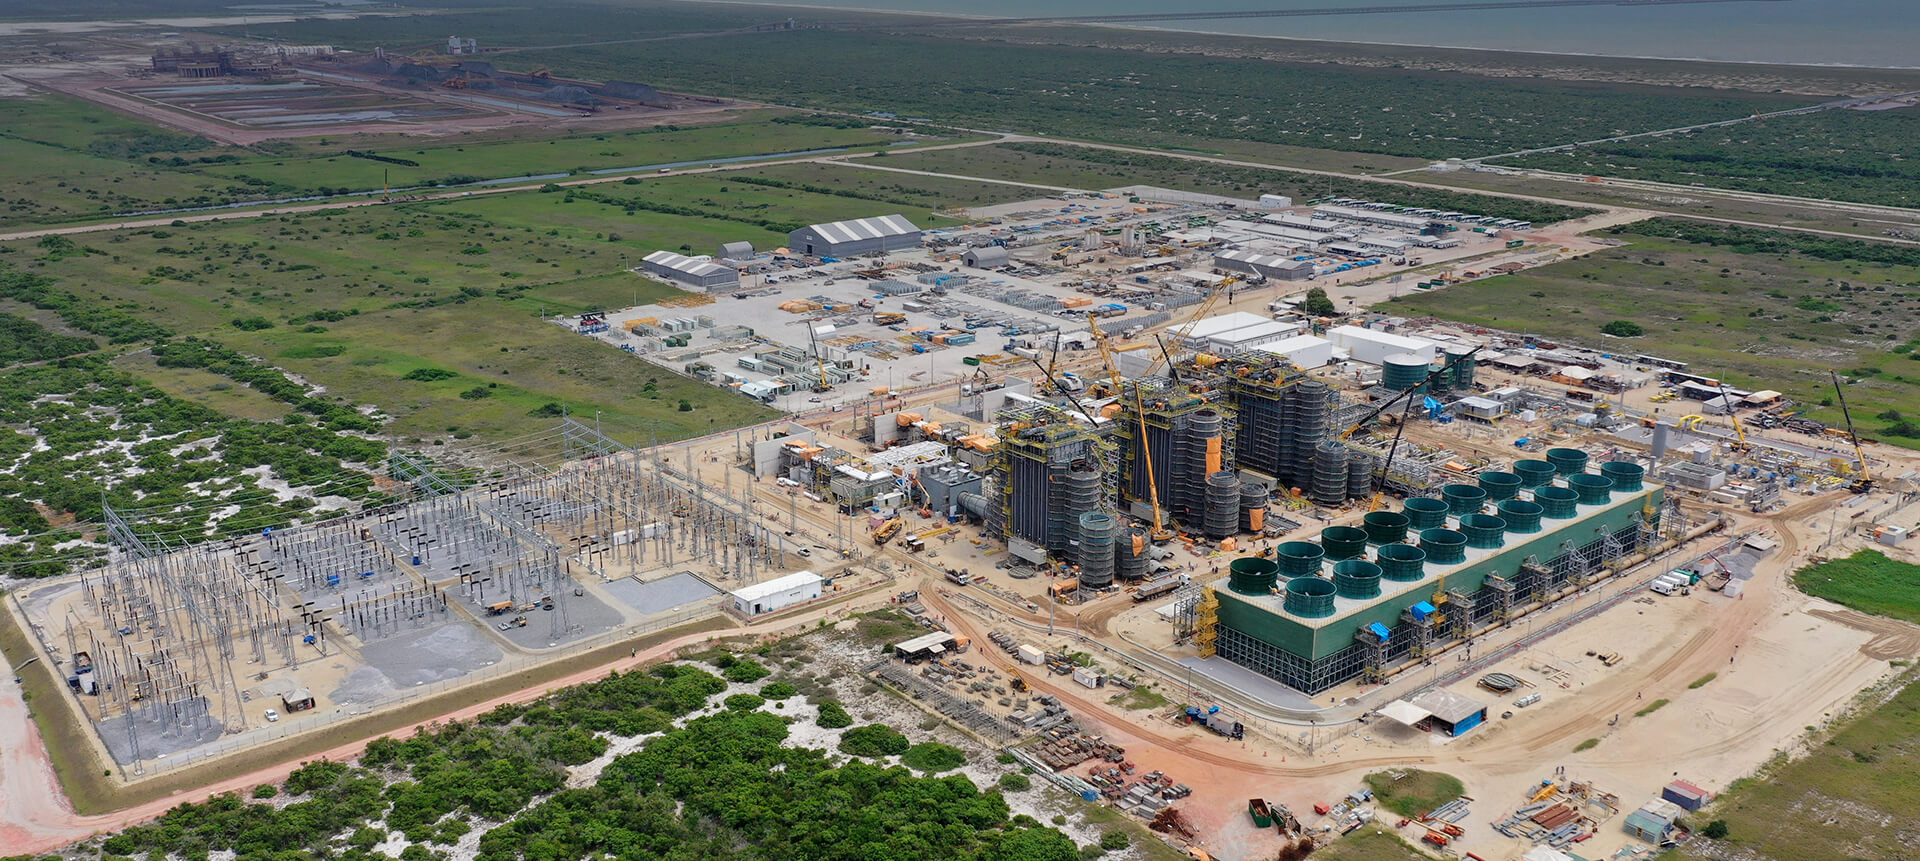 THE LARGEST NATURAL GAS THERMAL COMPLEX IN LATIN AMERICA: 3 GW OF SAFE ENERGY FOR BRAZIL